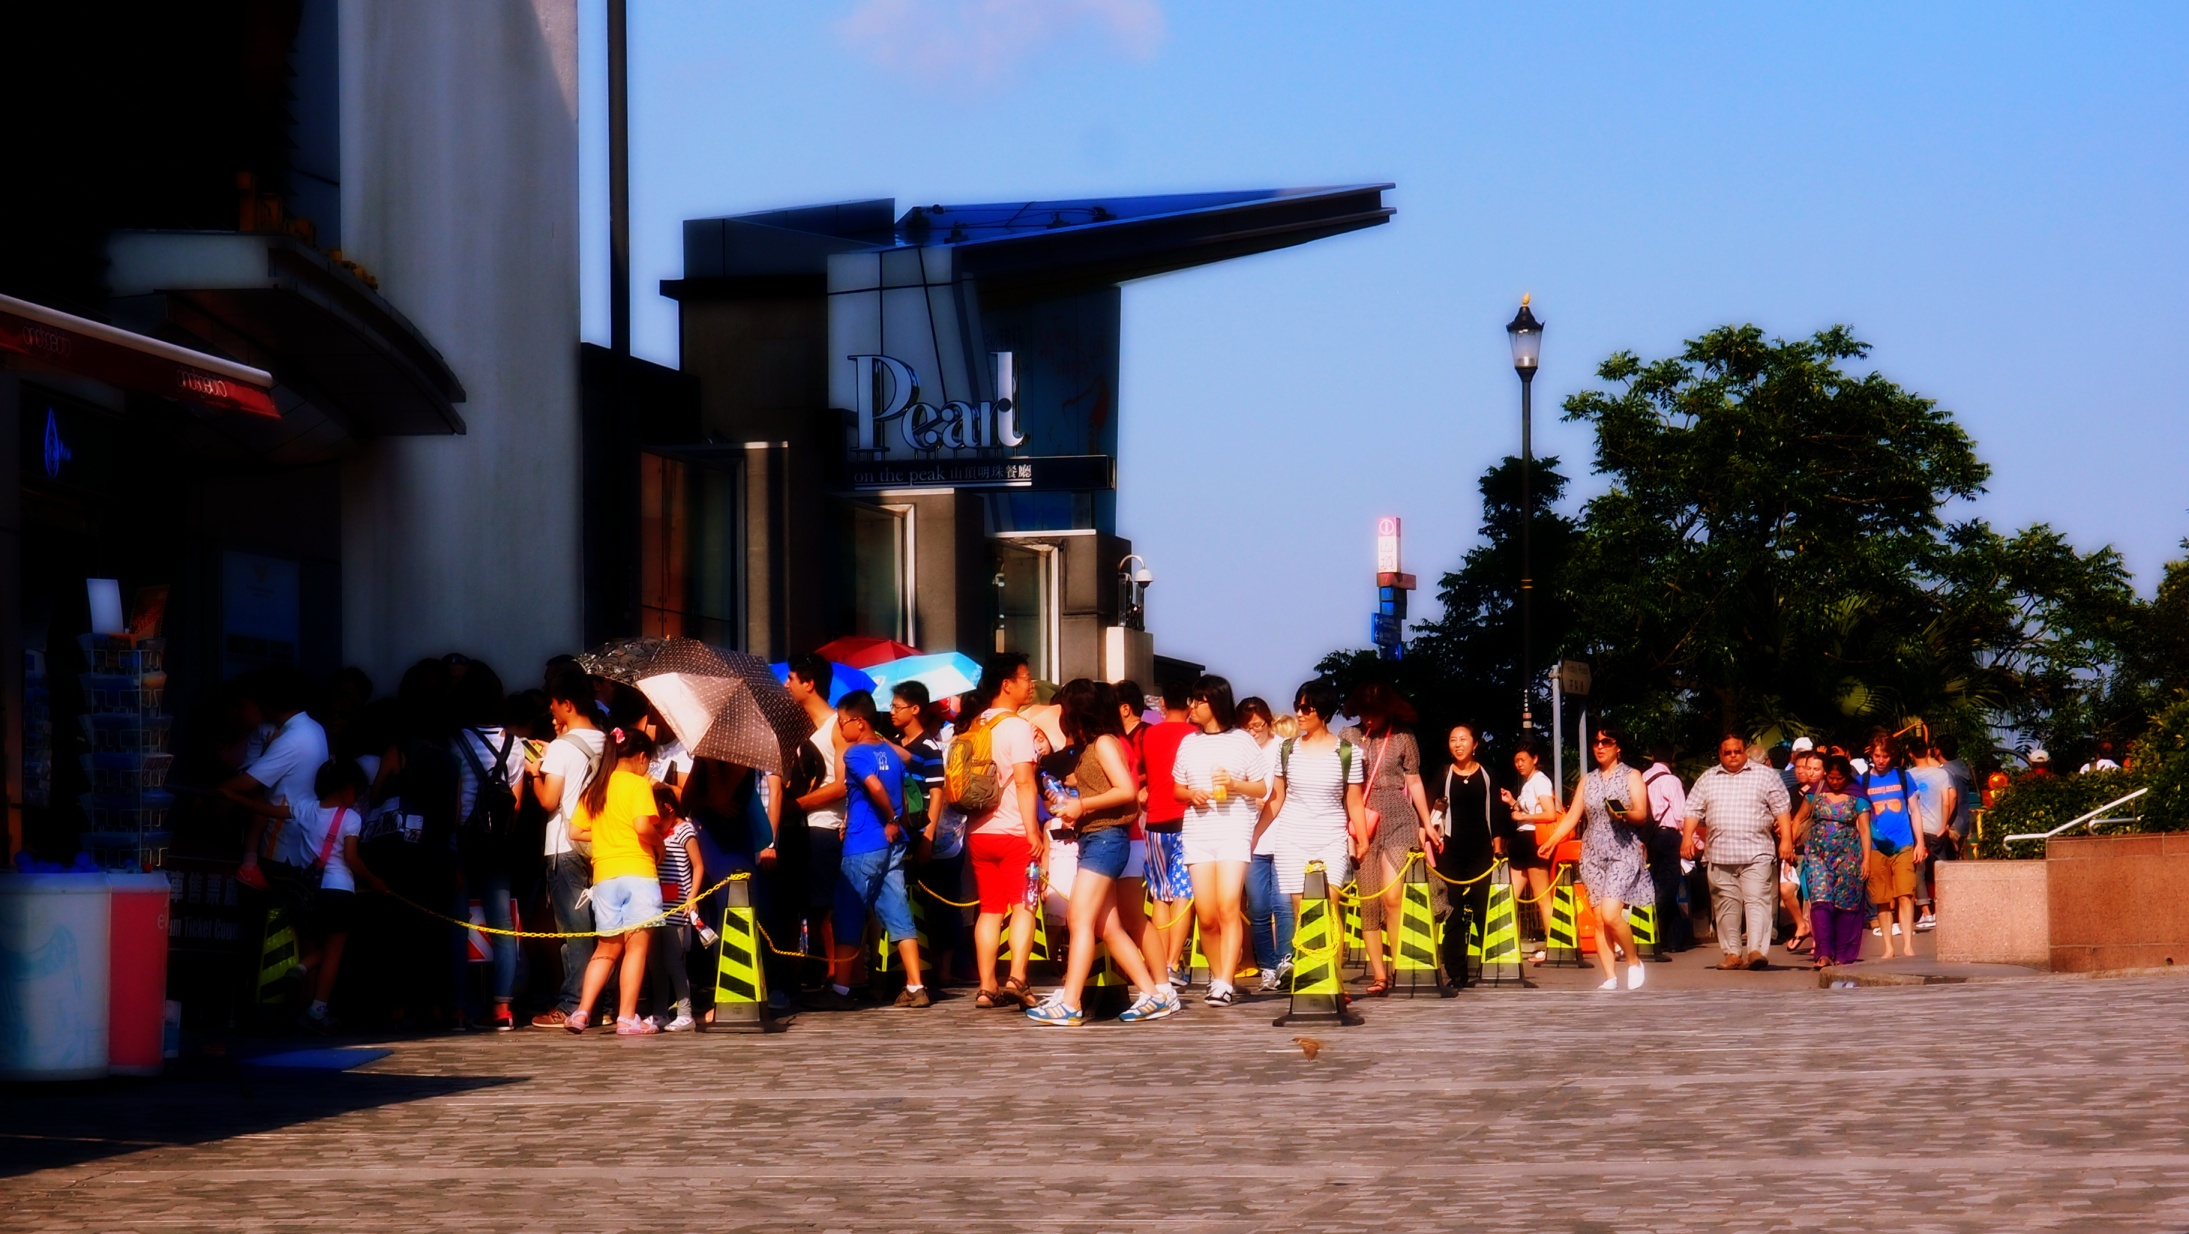 The line for the Peak Tram at the Peak